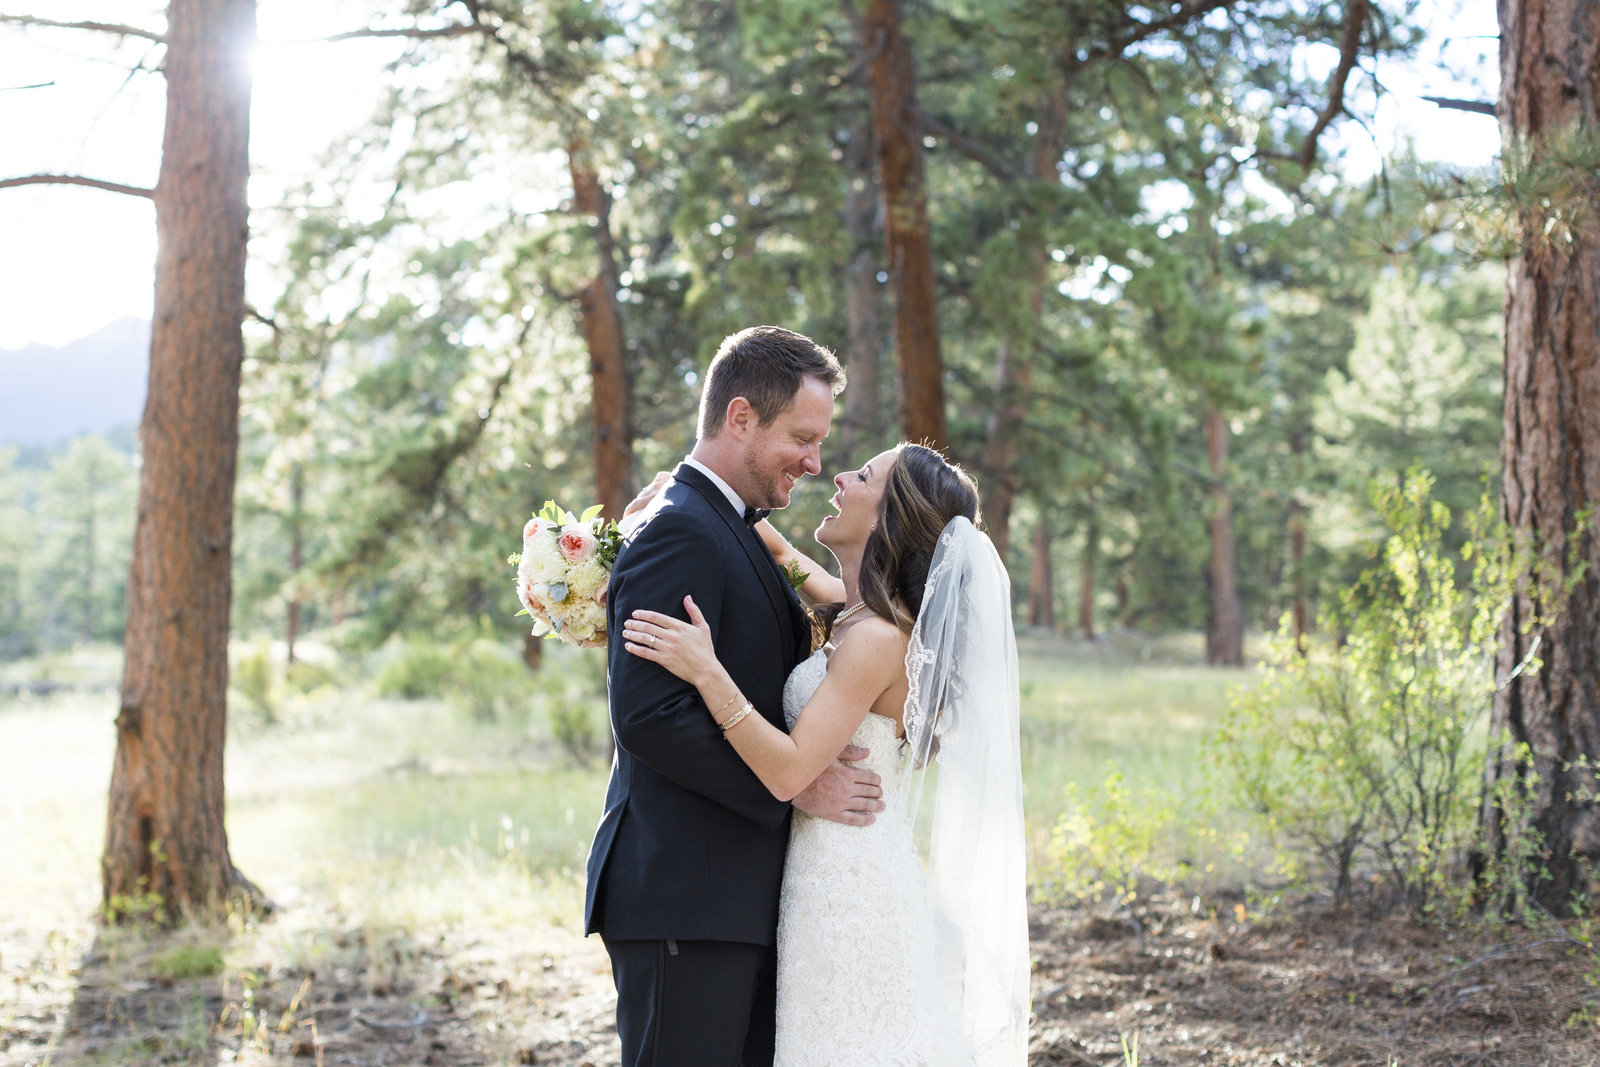 Jessi-Zach-Photography-Colorado-Mountain-Wedding-Photographer-Della-Terra-Mountain-Chateau_57